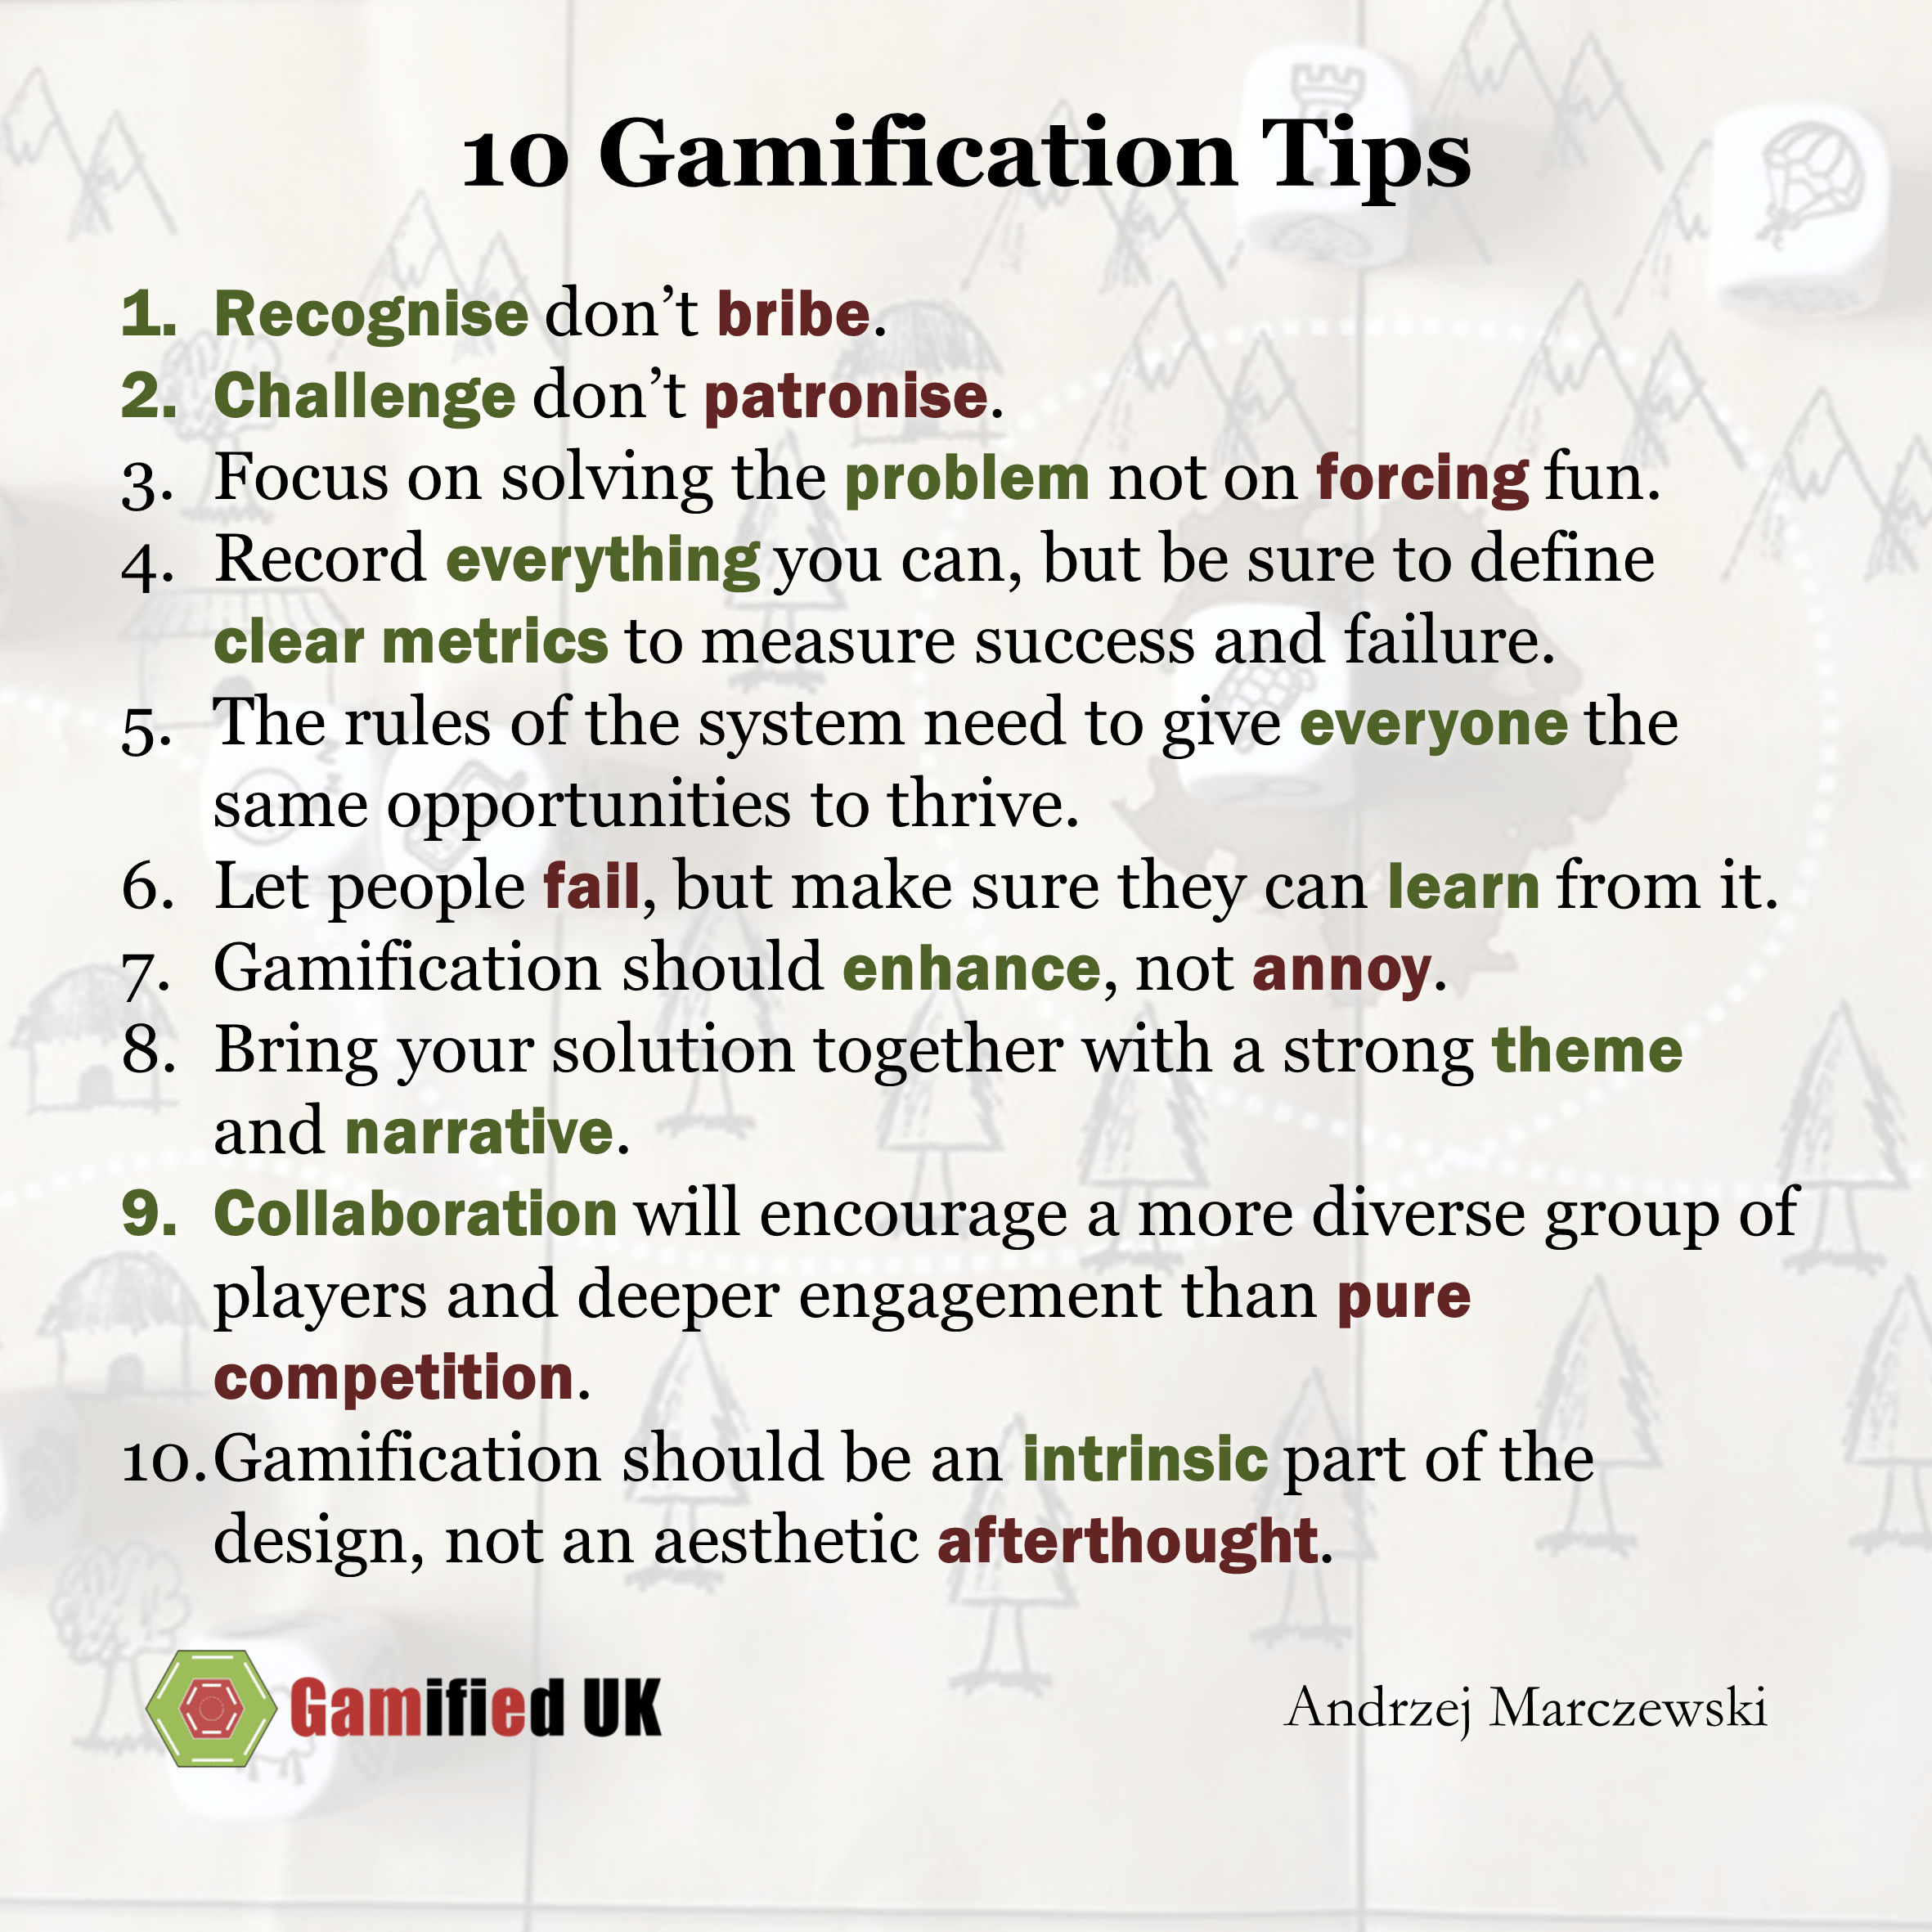 10 gamification tips 10 Top Gamification Tips 8211 And A Question